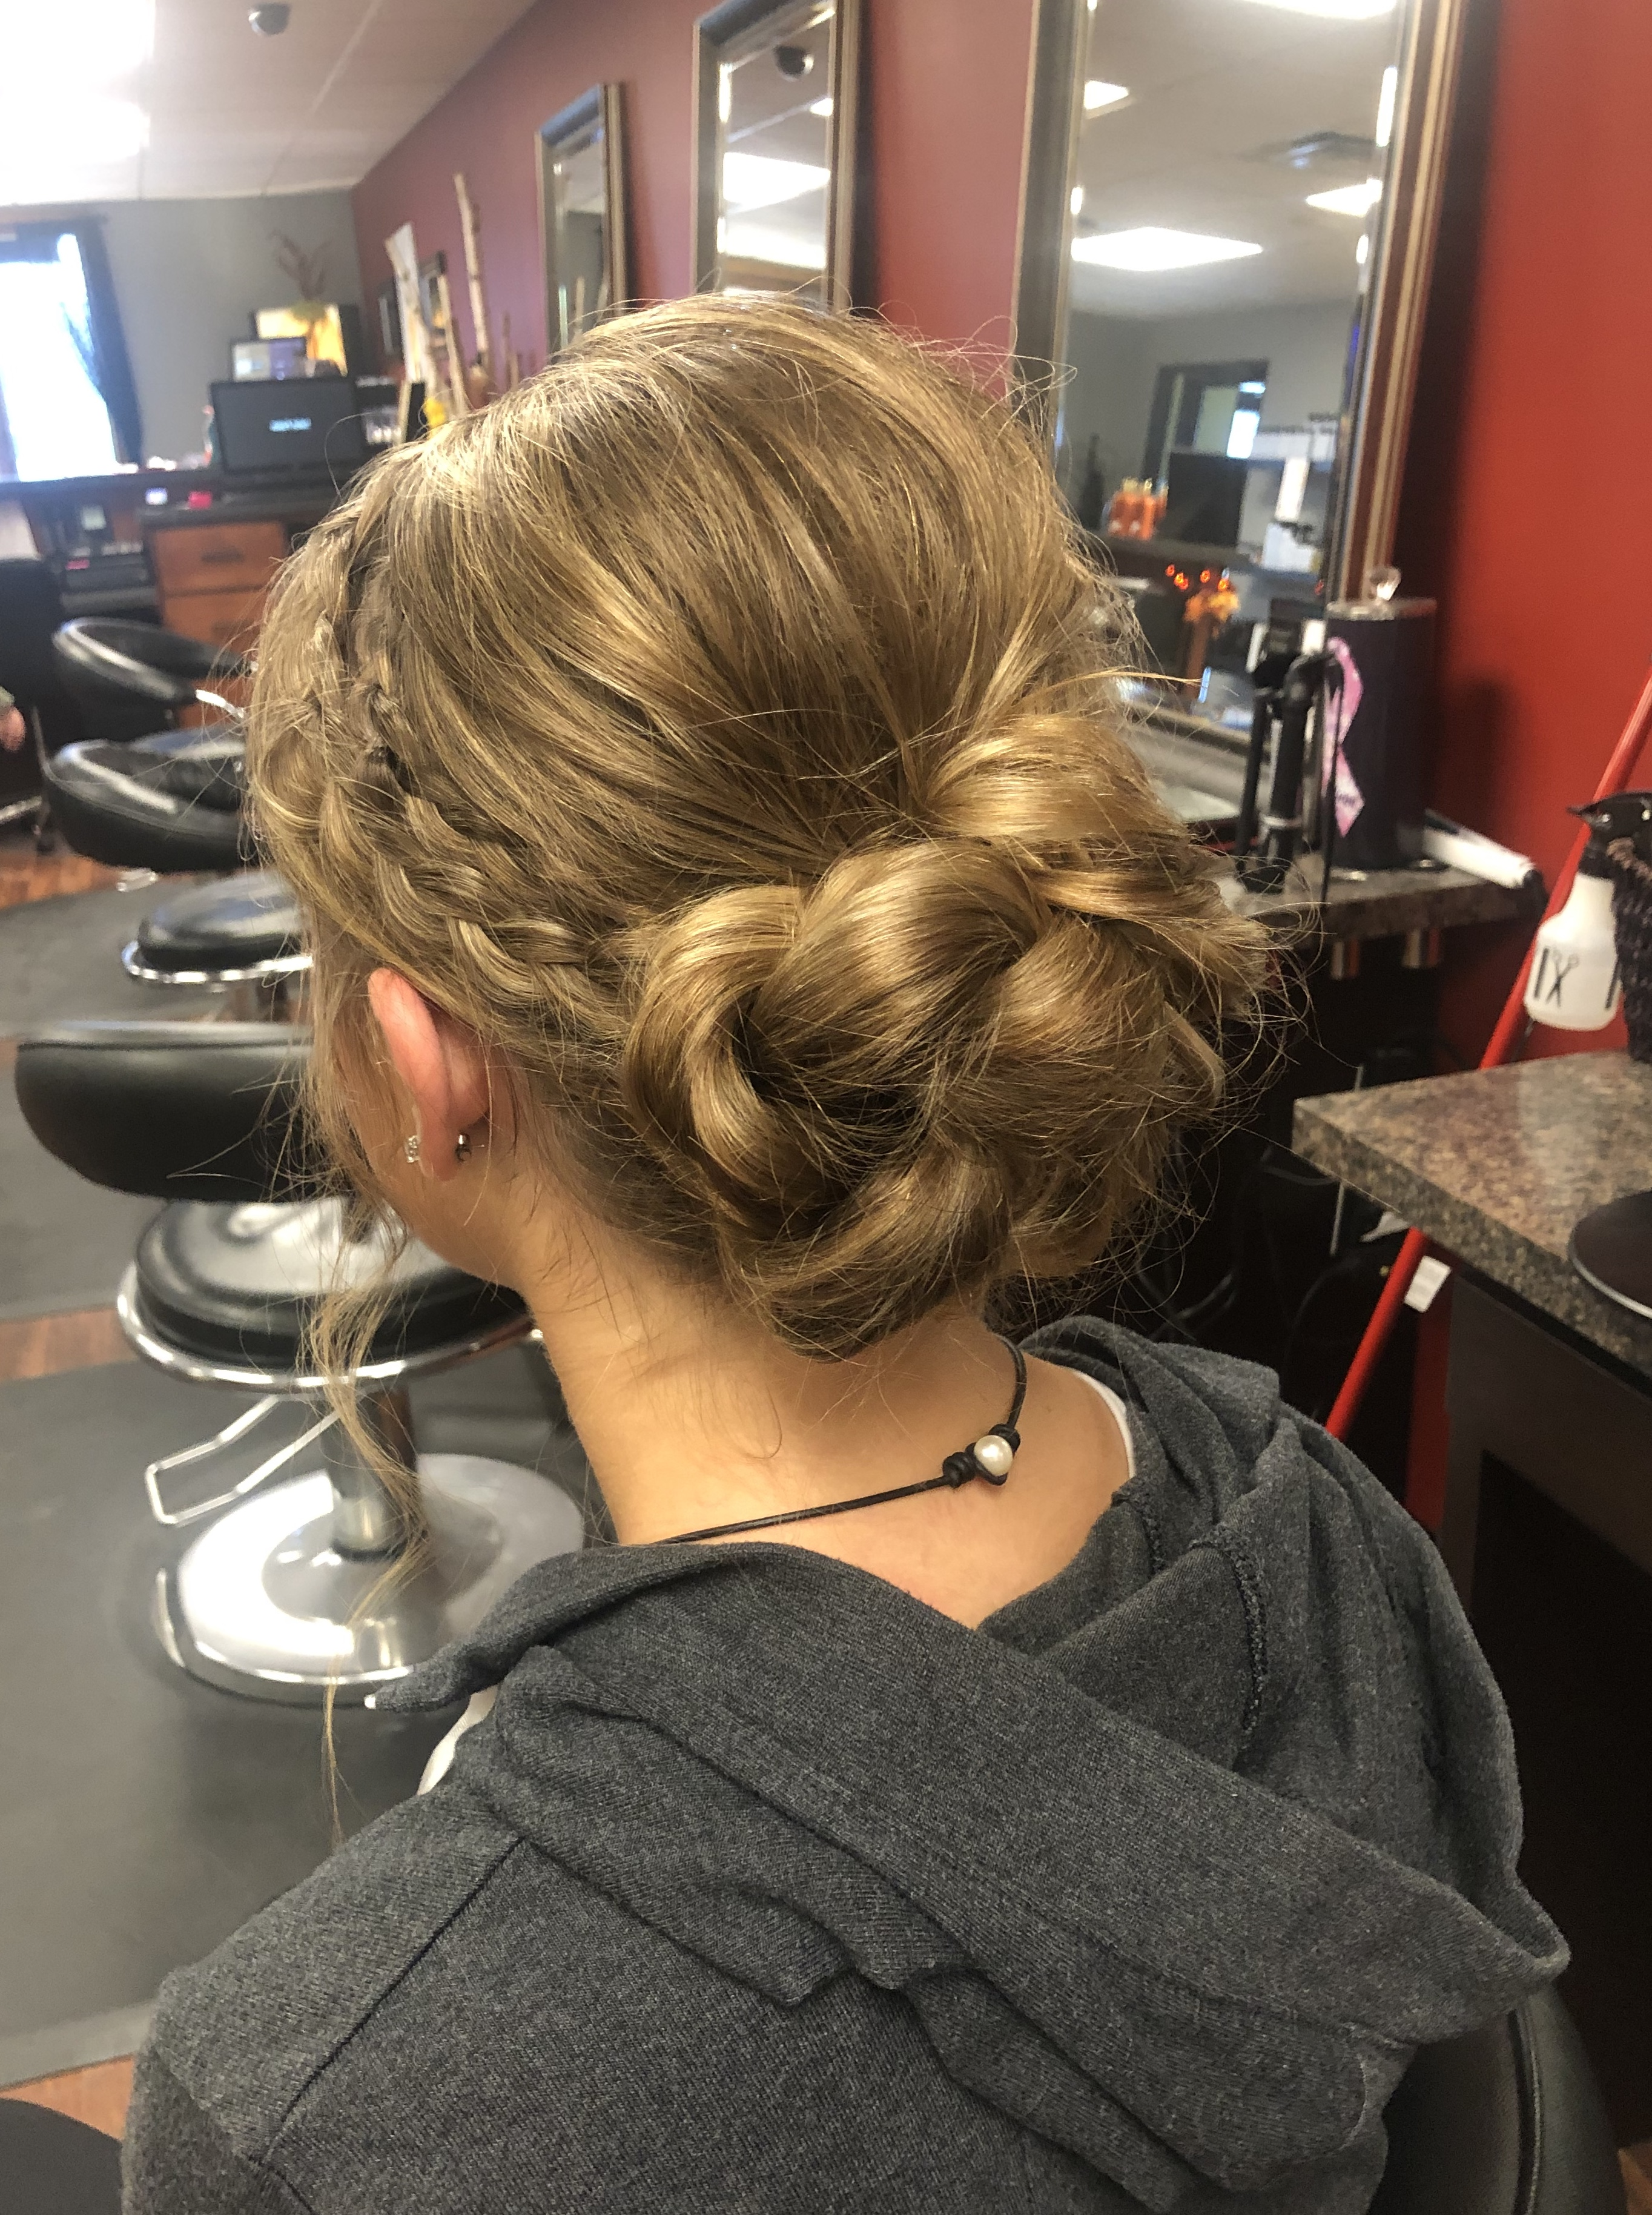 Updo by Greer